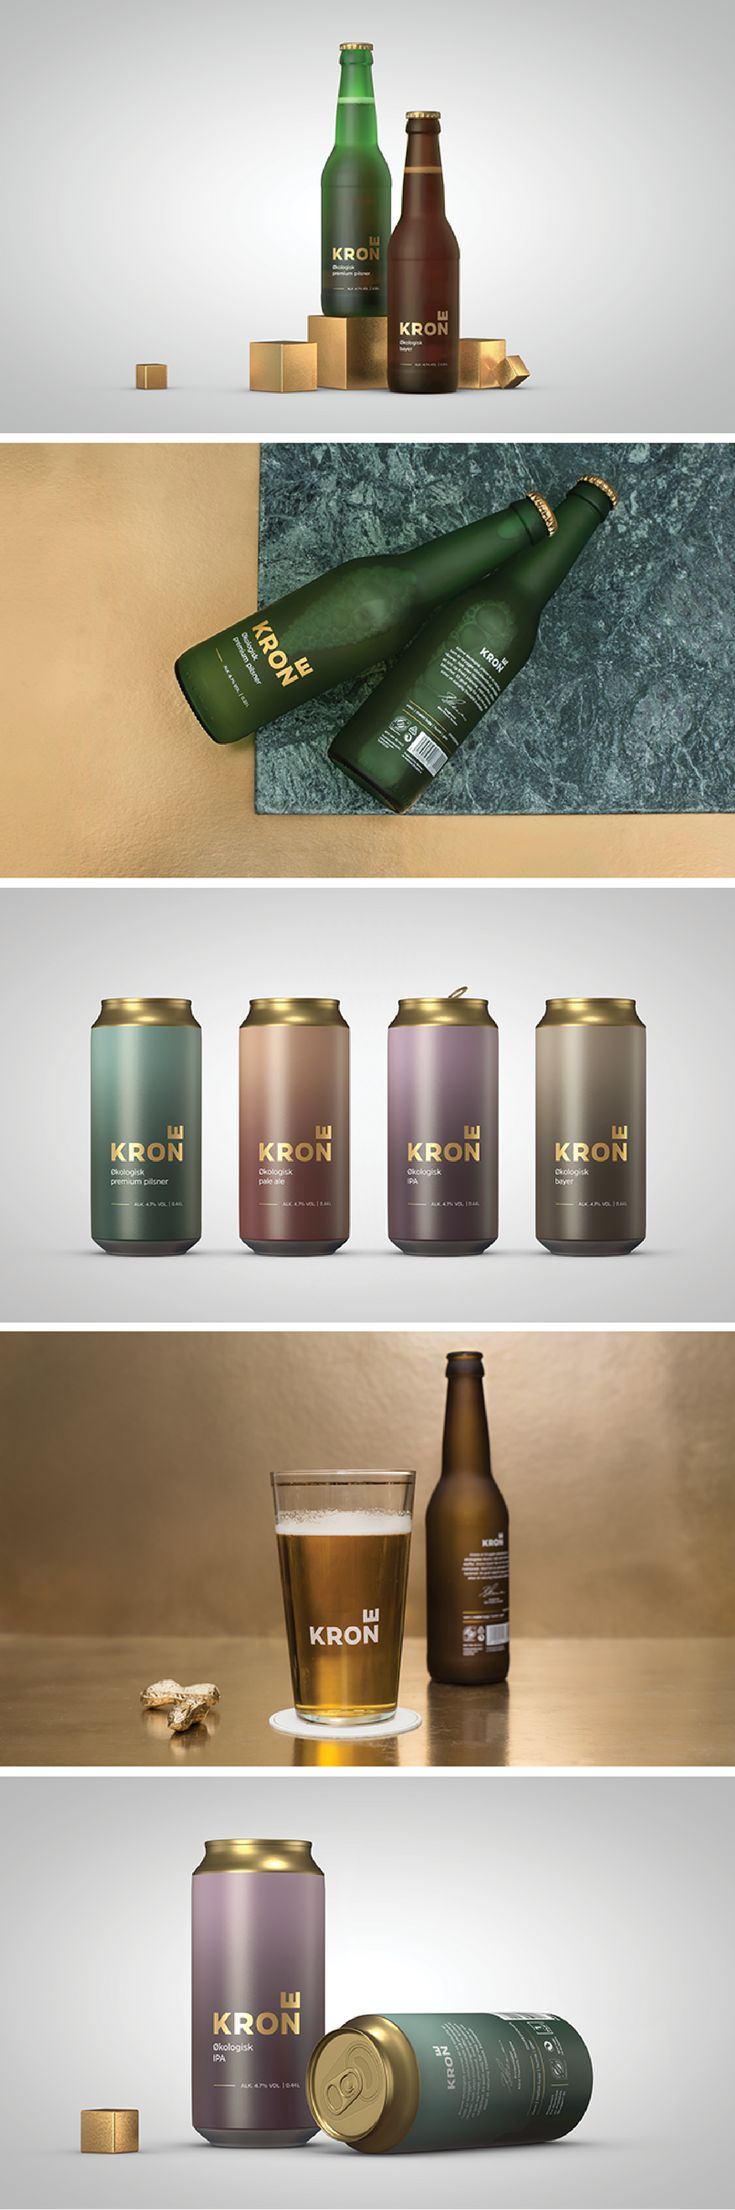 Krone (Crown) Beer packaging by [Team] Creuna Norway